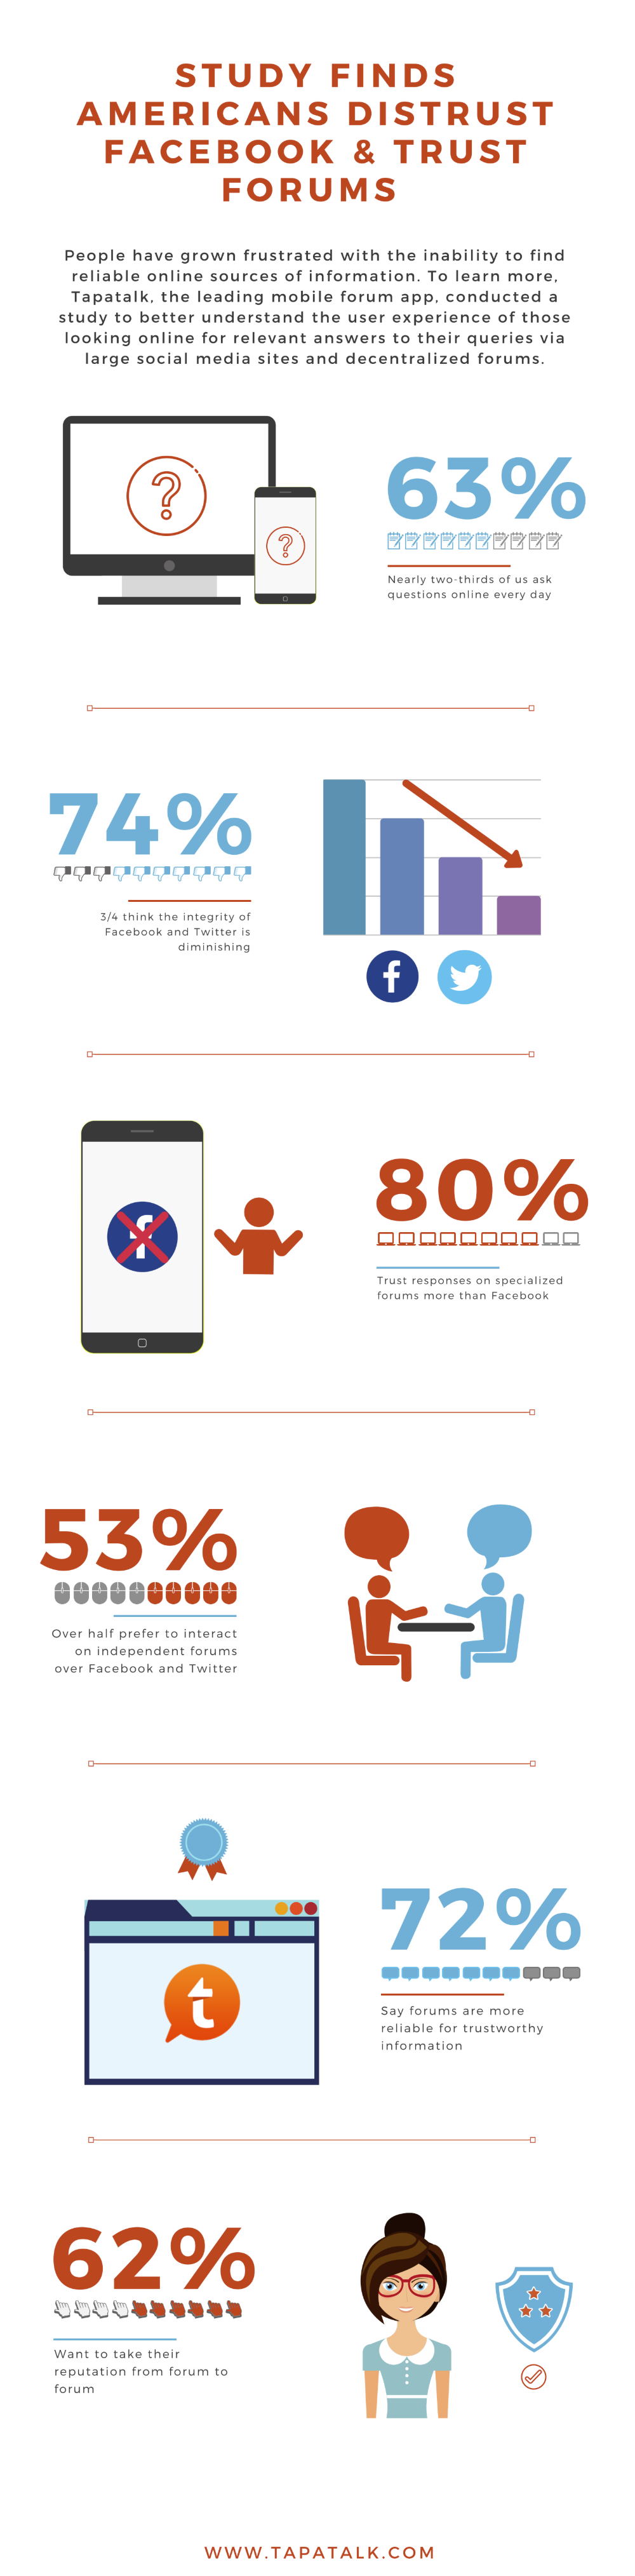 Social media trust survey results